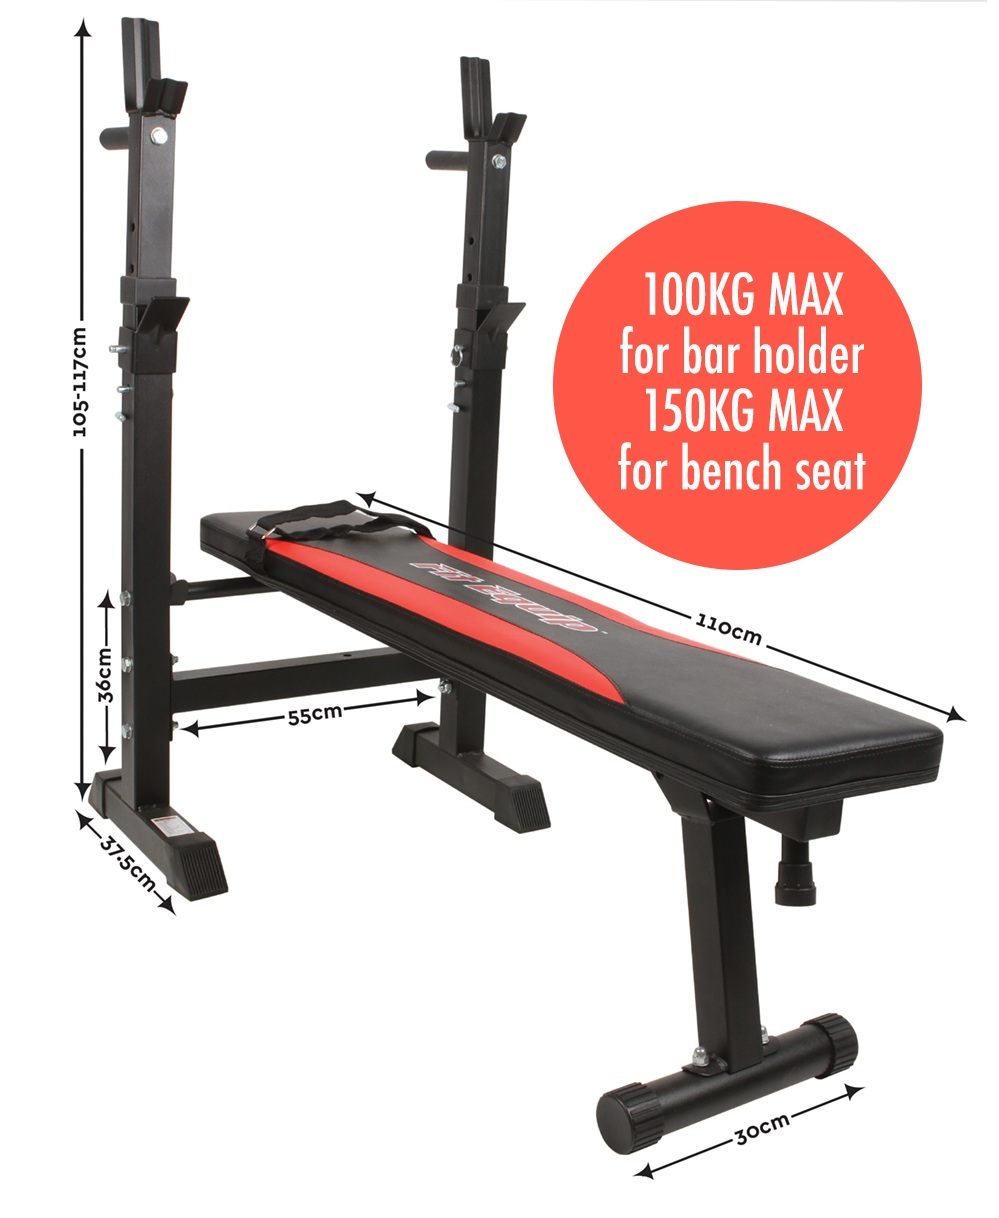 New fit equip bench press multi station upper body home